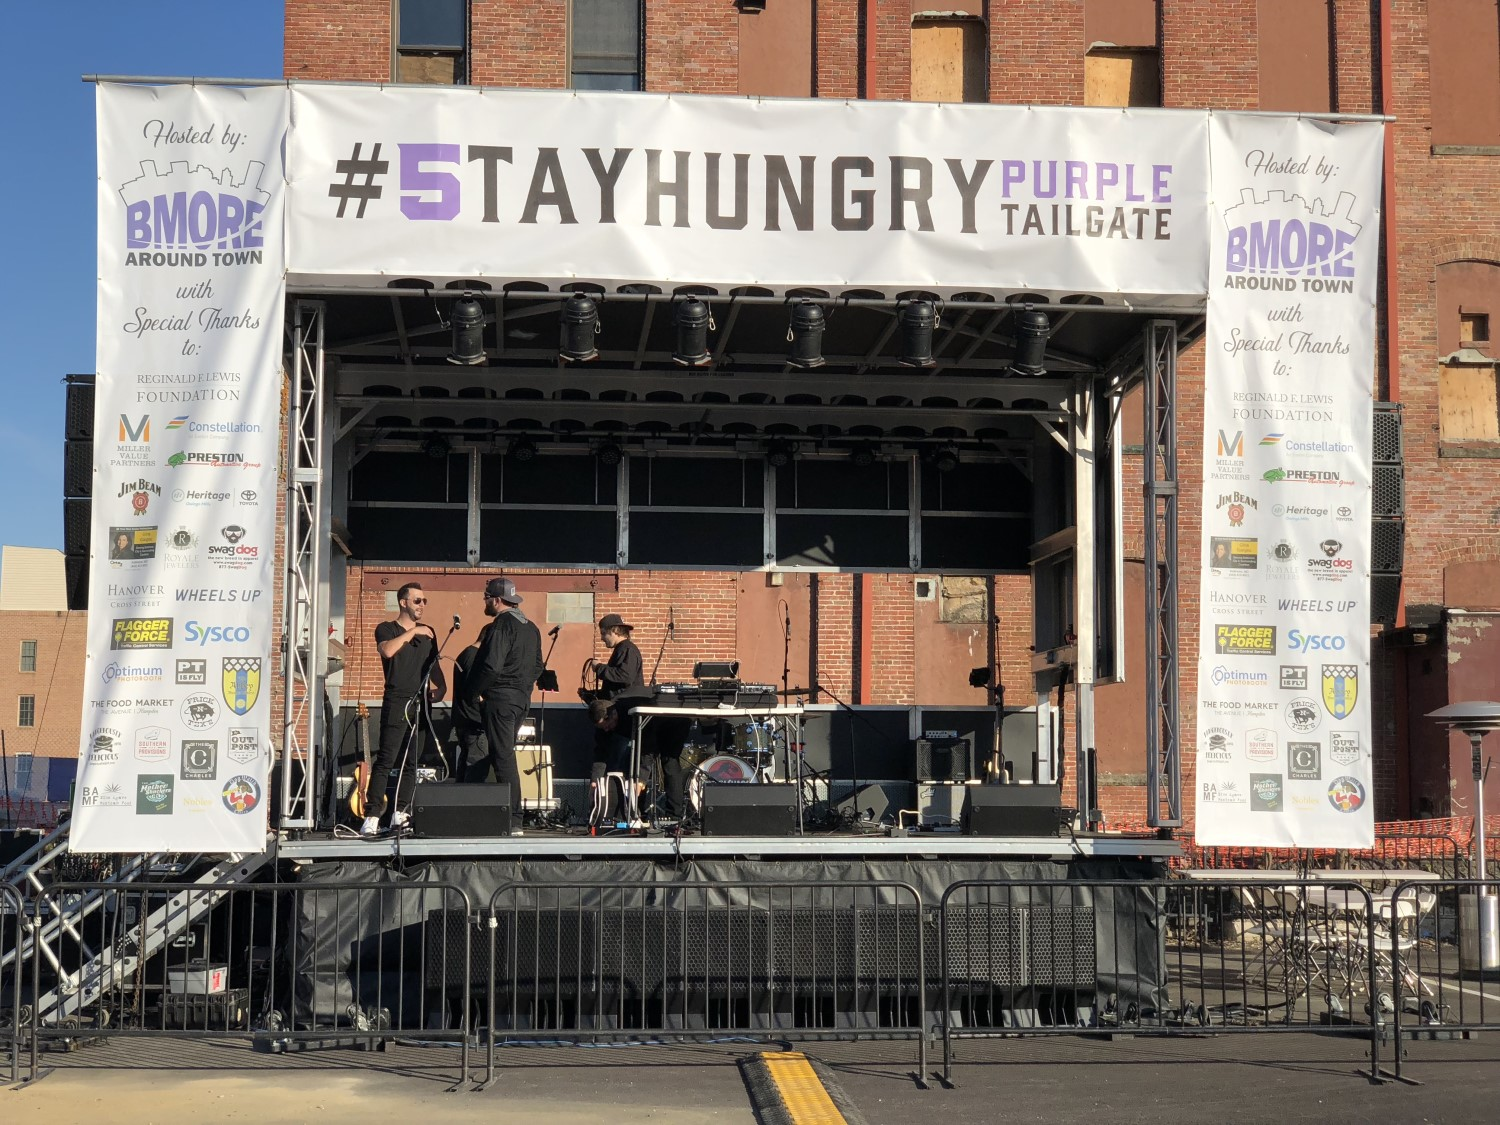 Bmore Around town Mobile stage banner package